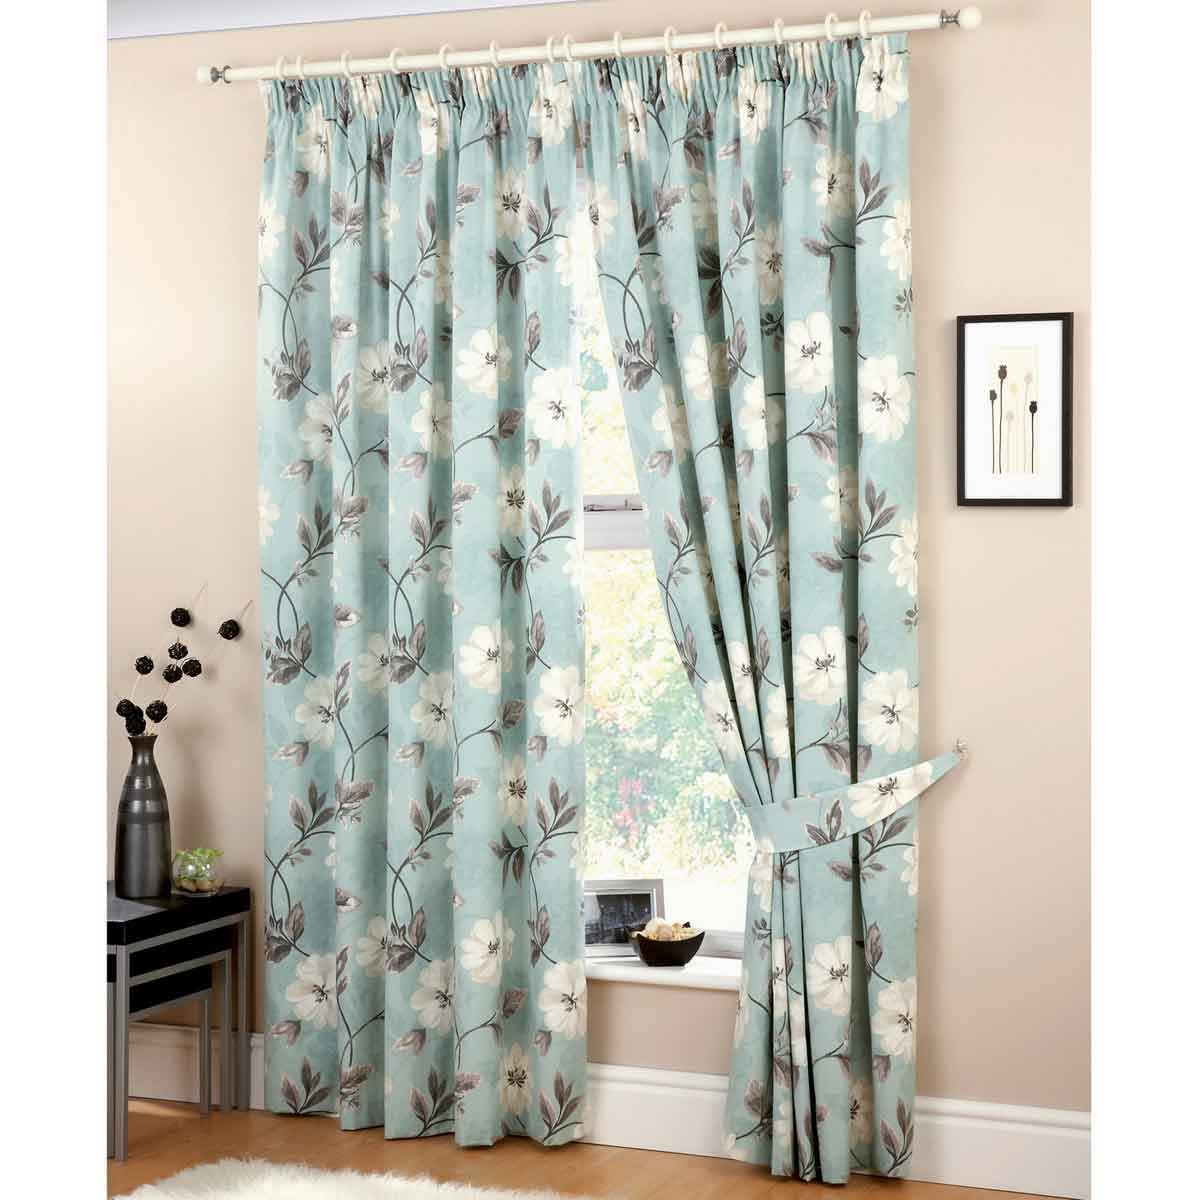 Blue Curtains For Bedroom Curtains Wall Decor With Blue Bedroom Curtains (Image 9 of 15)